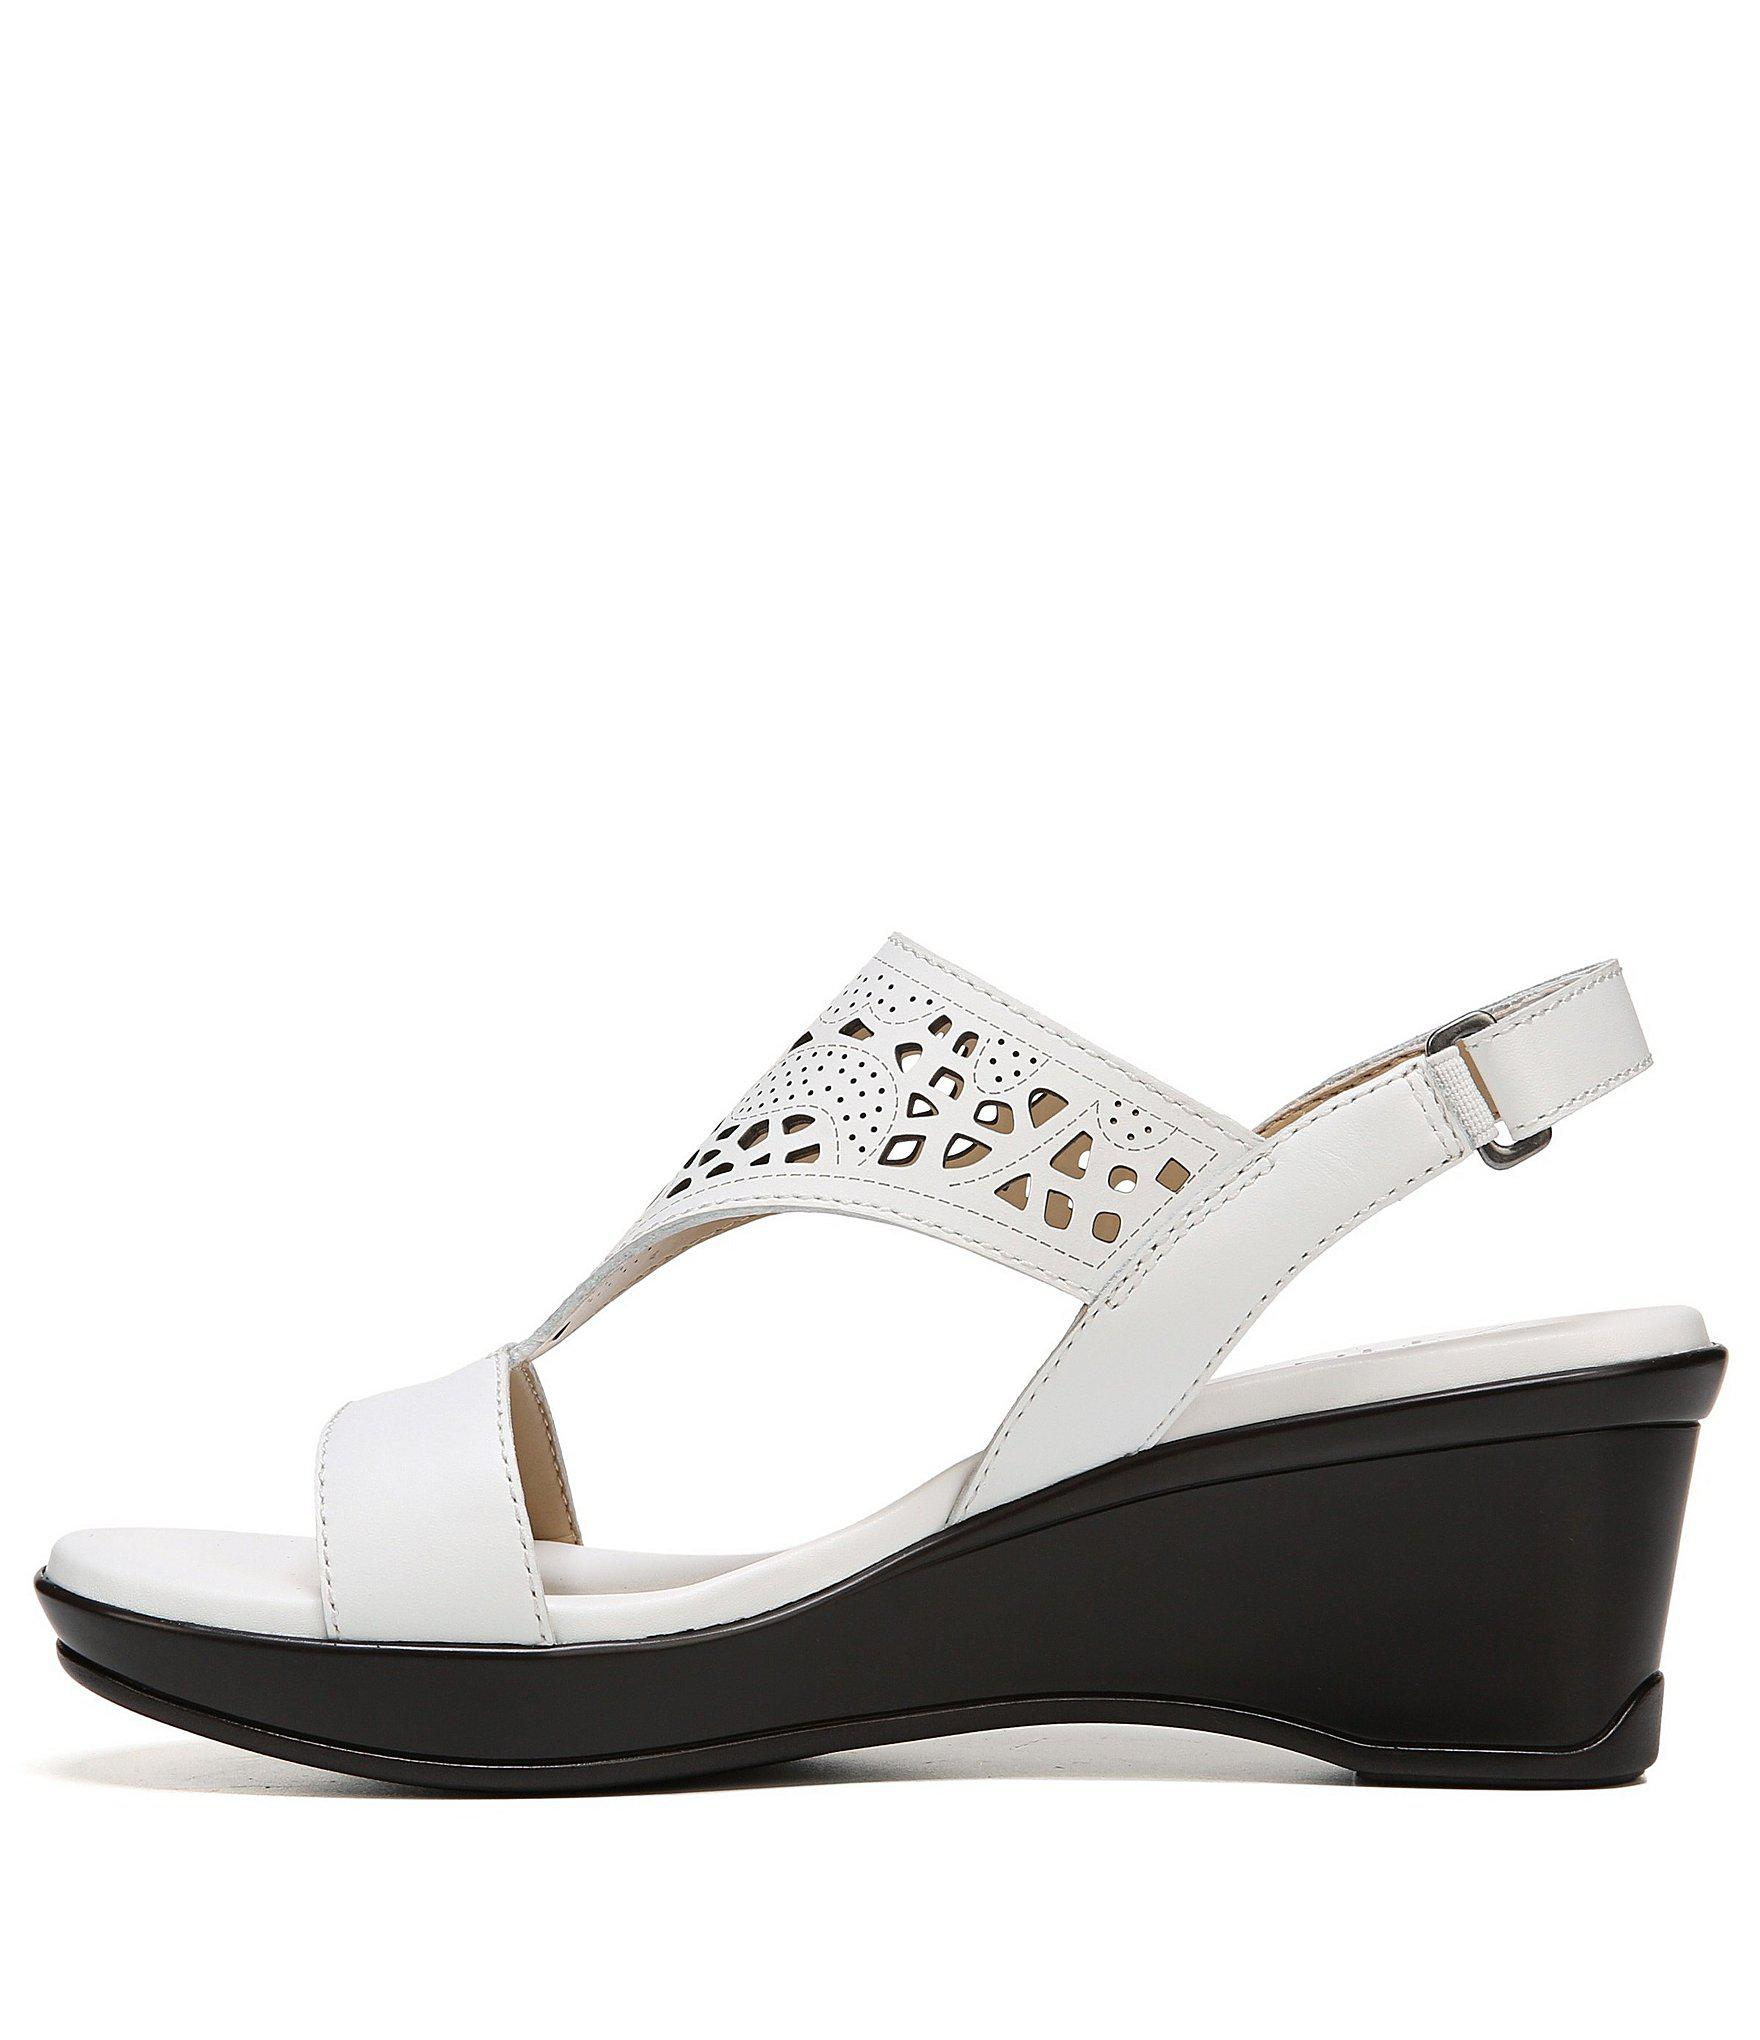 11d7c7d4418 Naturalizer - White Veda Wedge Sandals - Lyst. View fullscreen